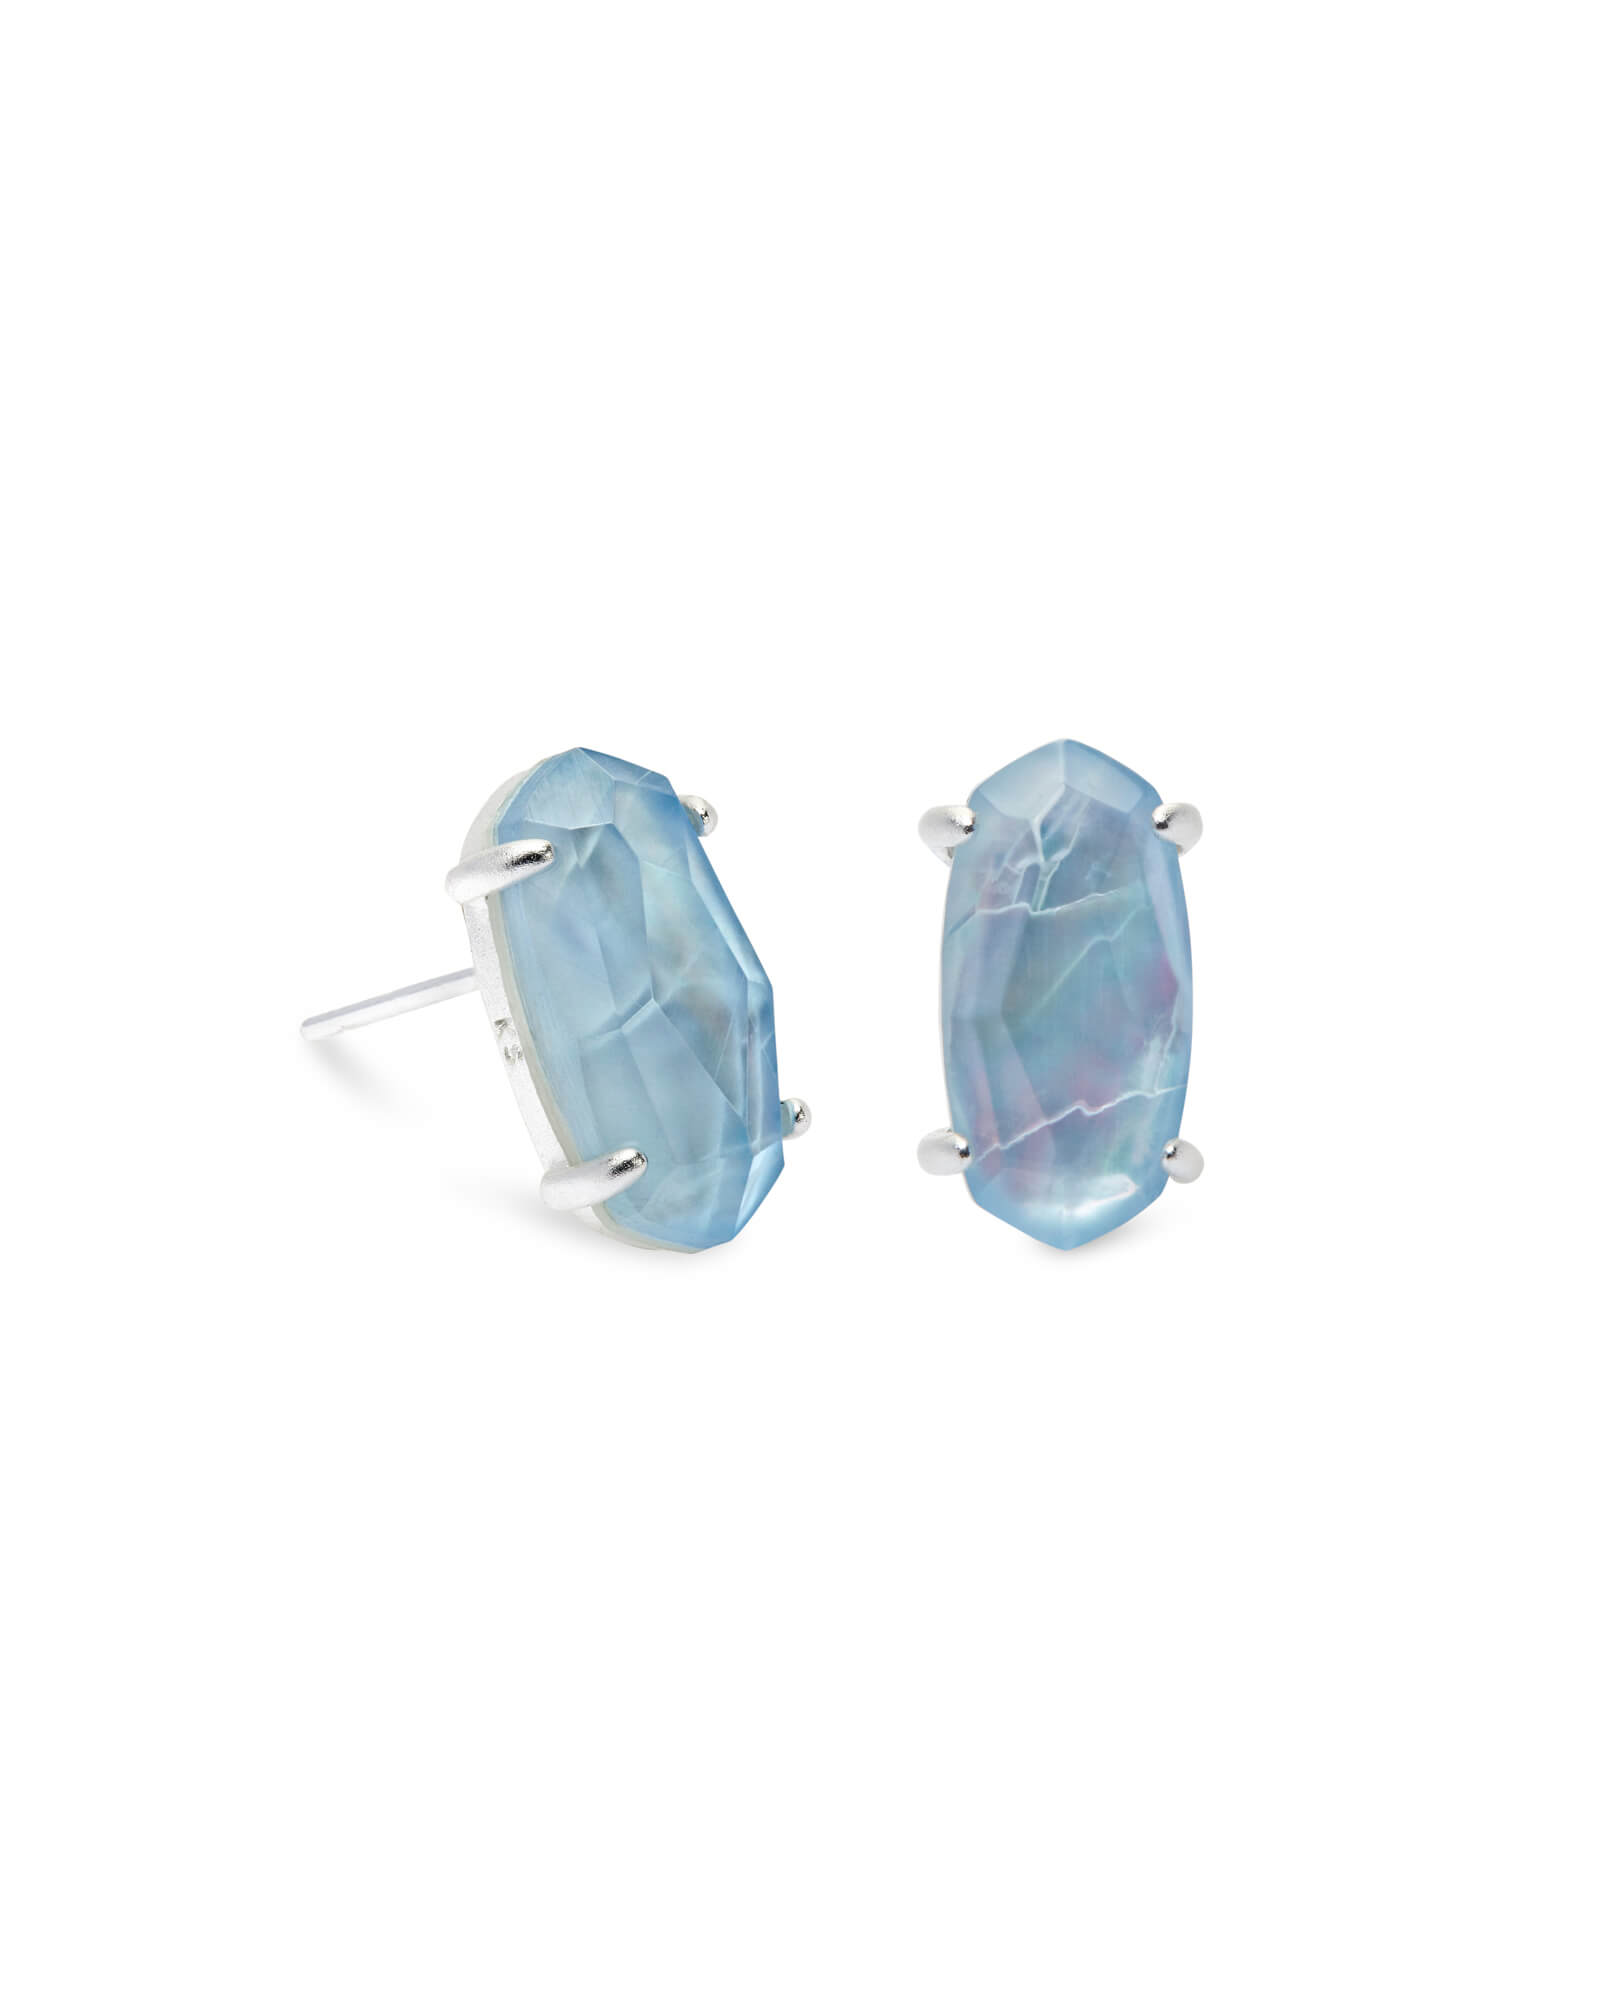 Betty Bright Silver Stud Earrings in Sky Blue Illusion